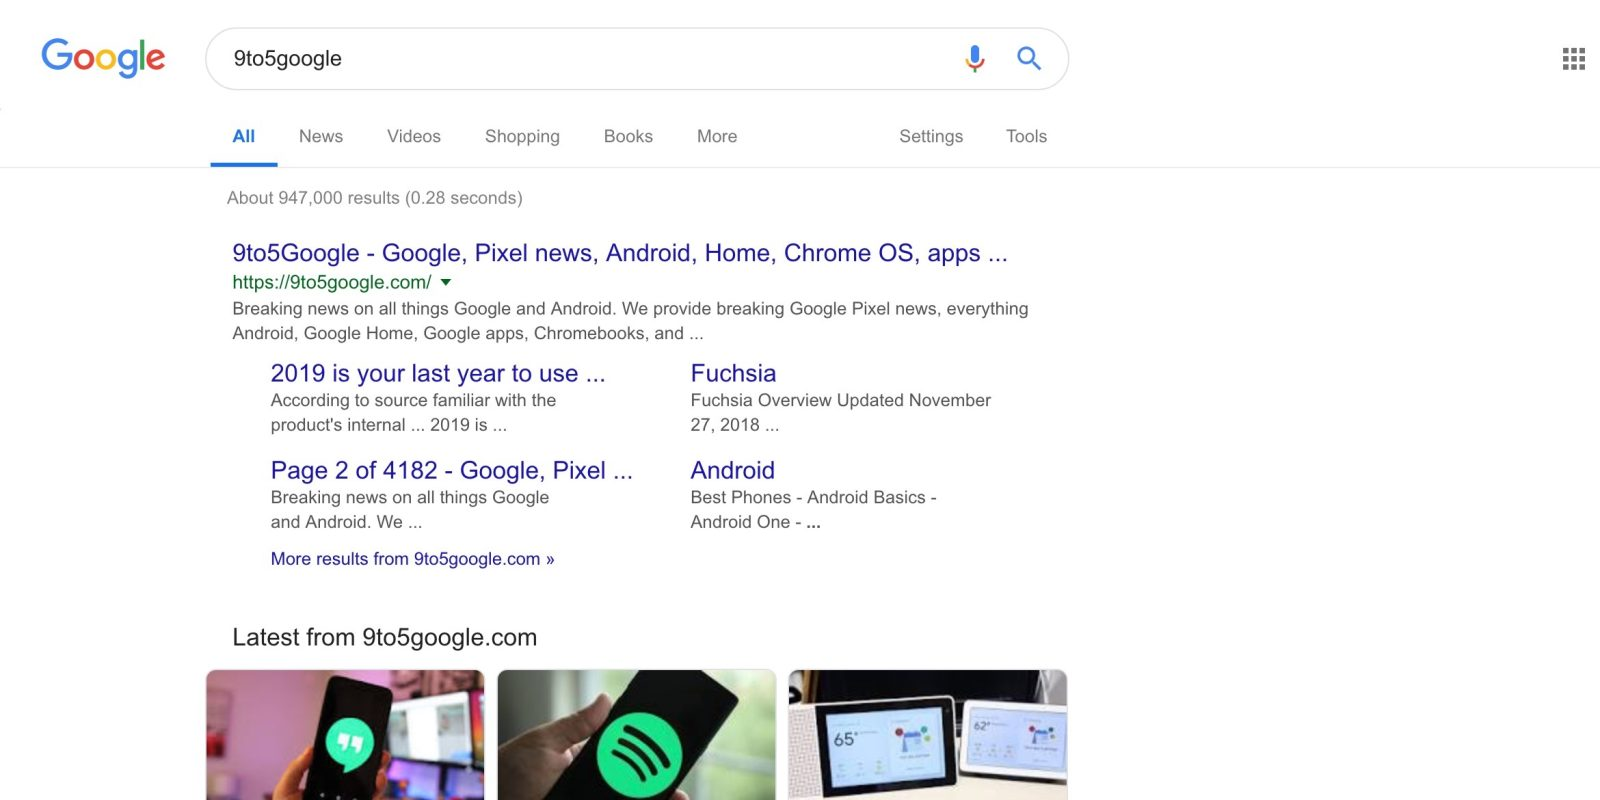 Google Search Material Theme rolling out - 9to5Google